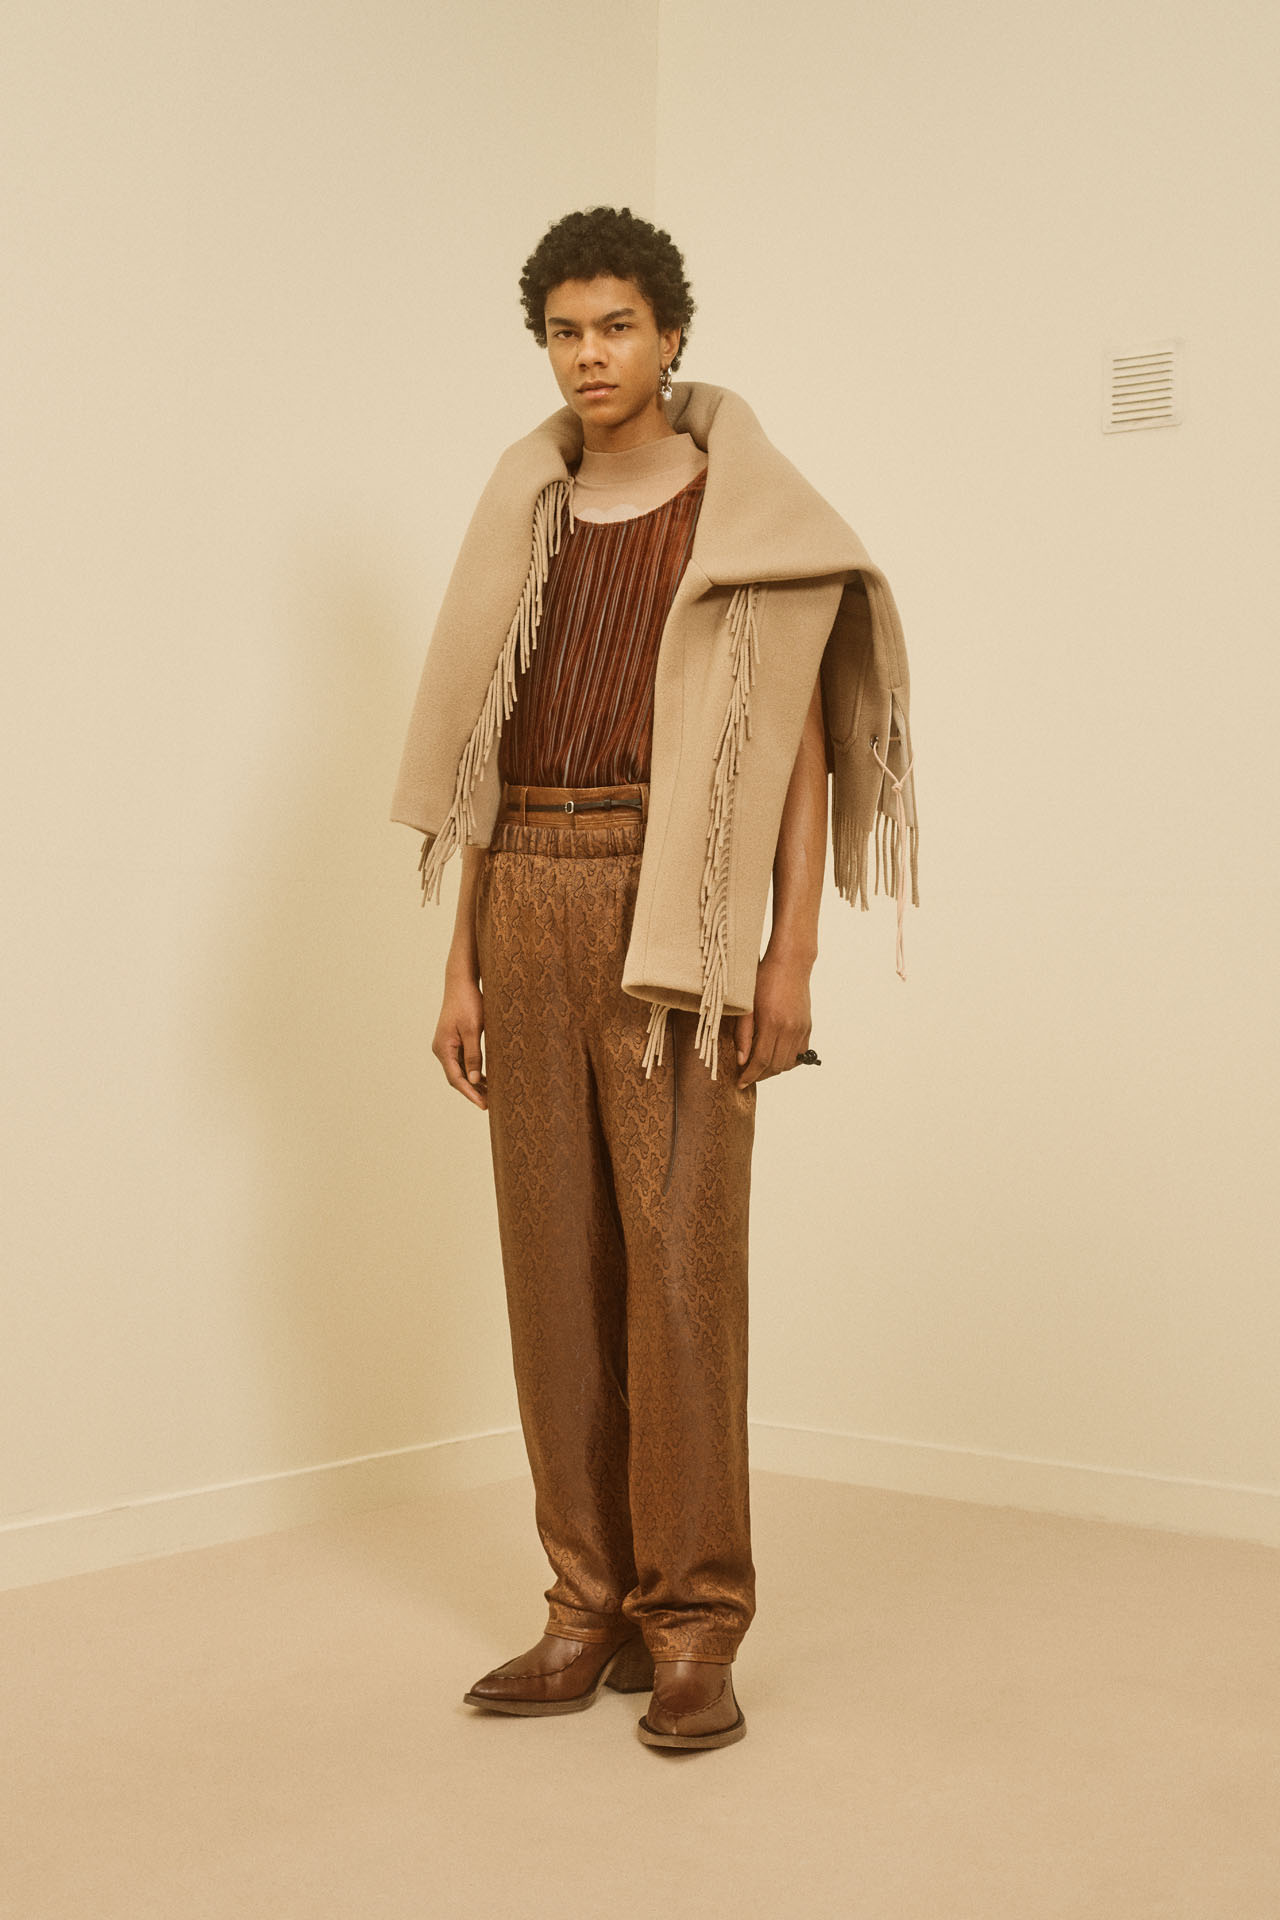 Look Fall/Winter 2021, image 9